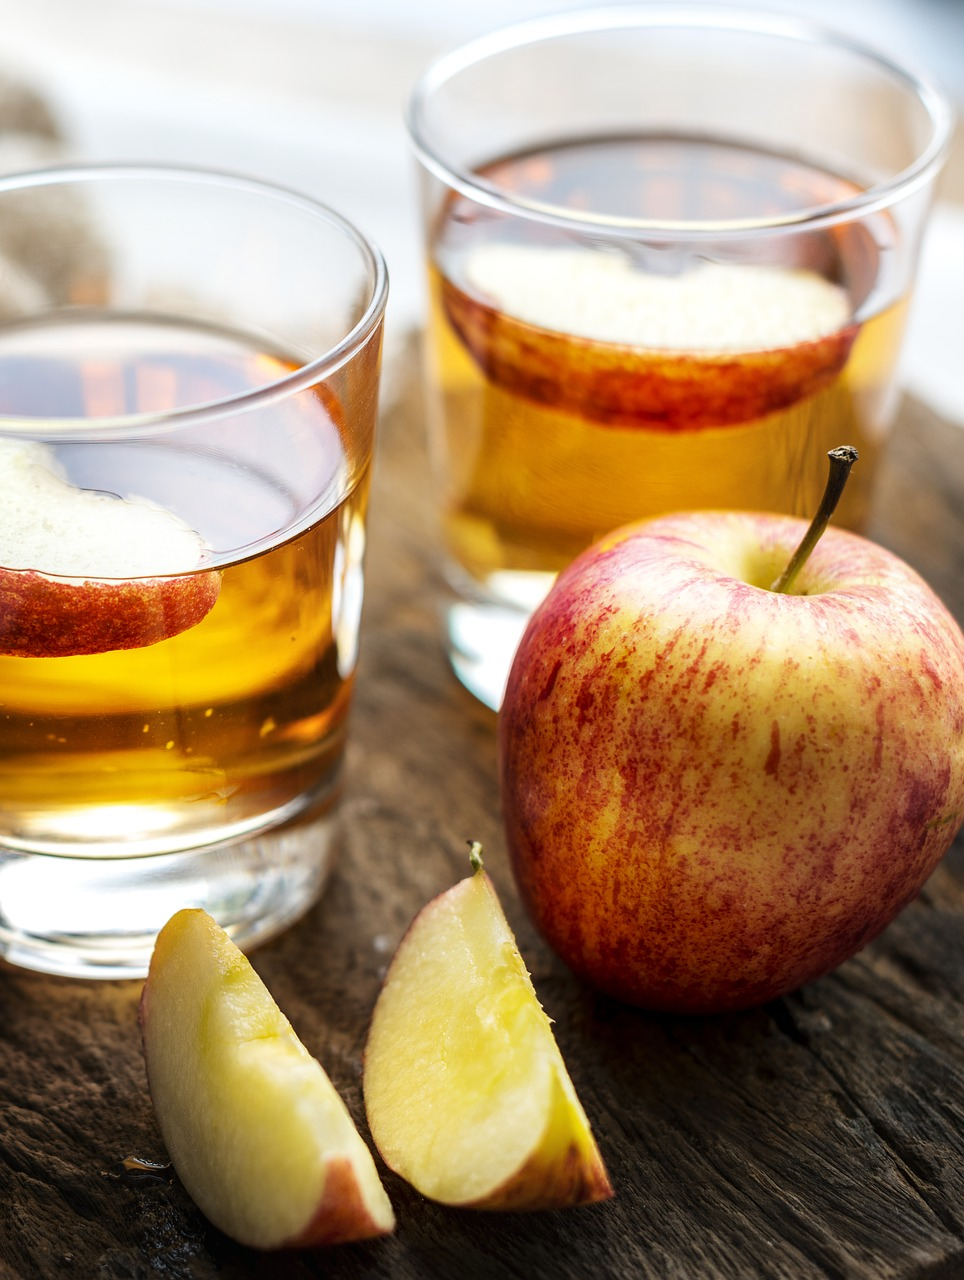 Earache Home Remedy: apple cider vinegar